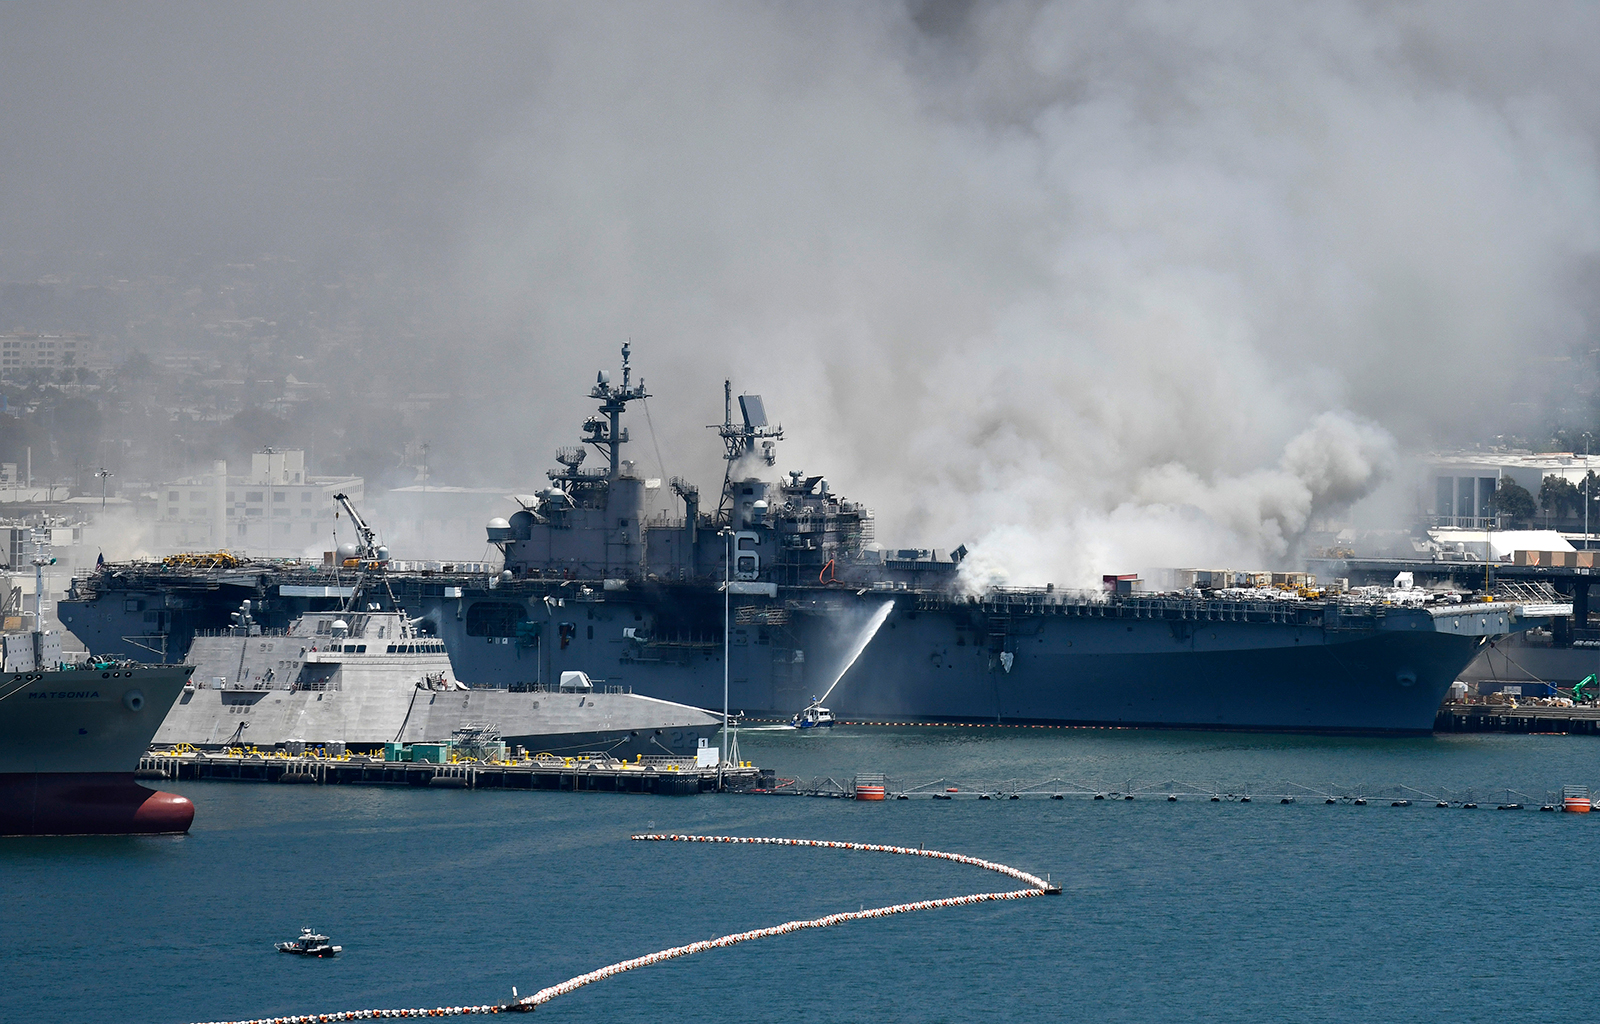 Federal firefighters battling blaze on US Navy ship that could last for days